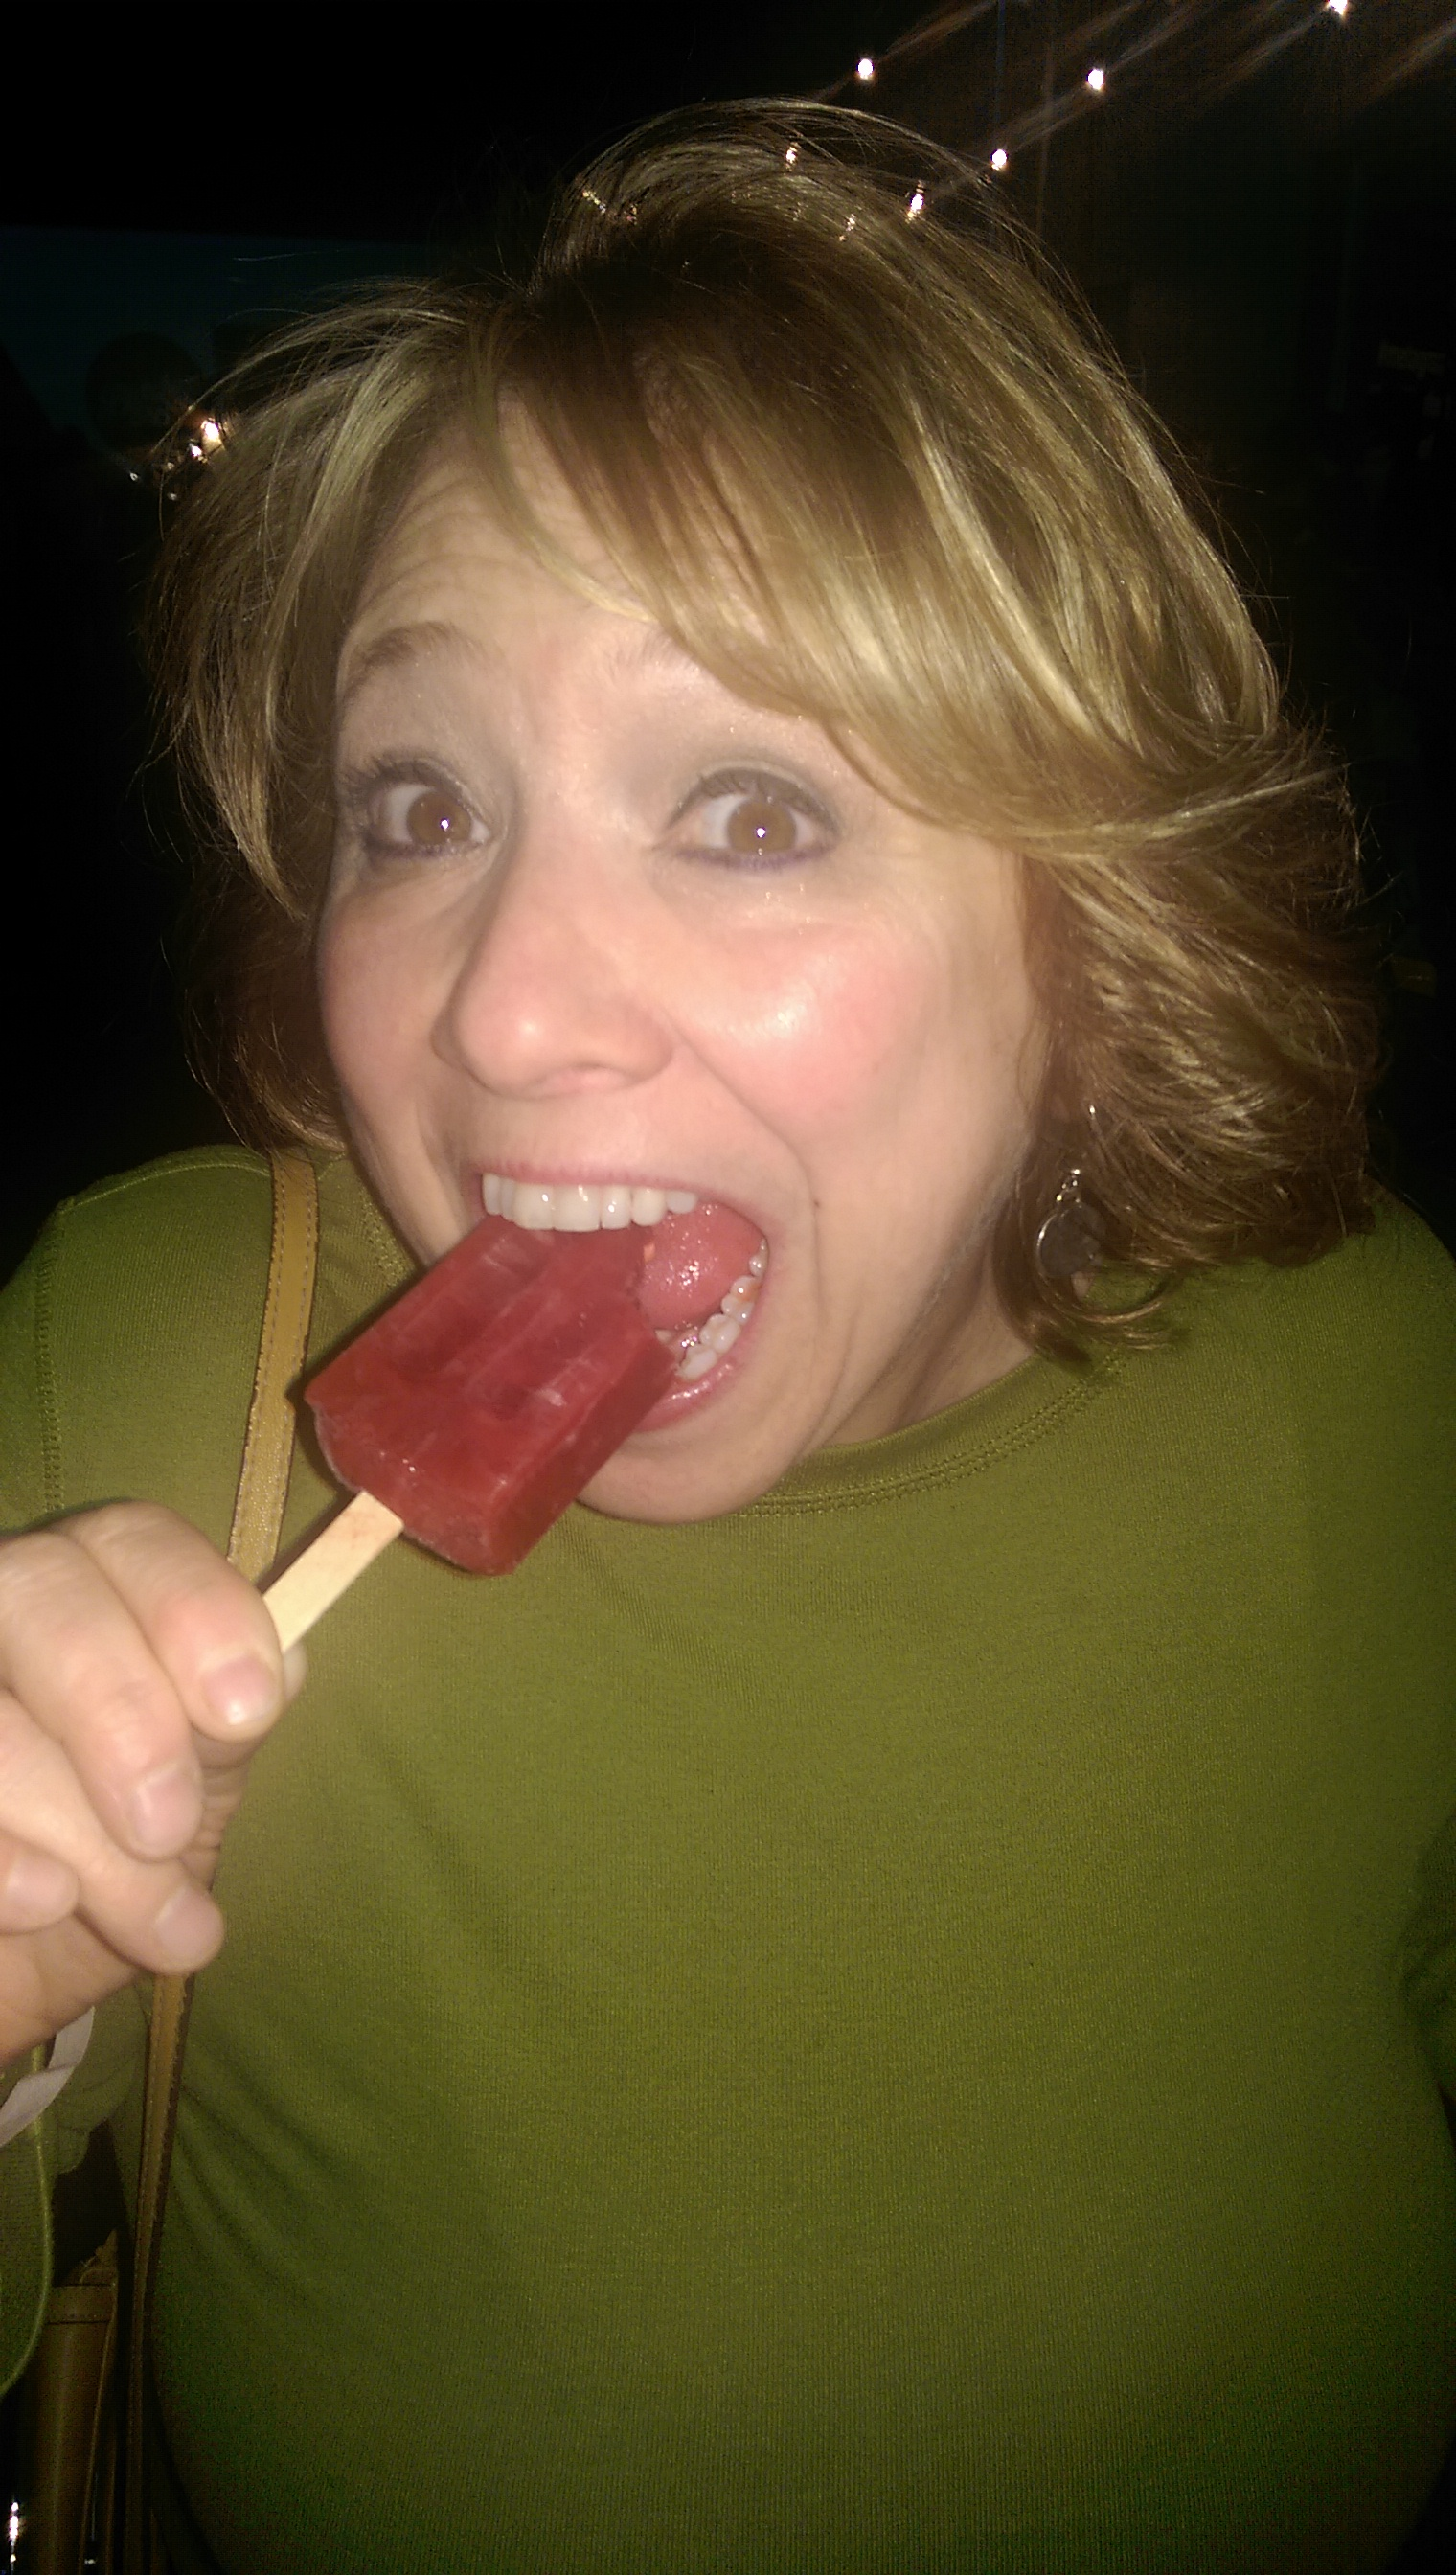 She was really excited about the popsicle. And basically everything else.